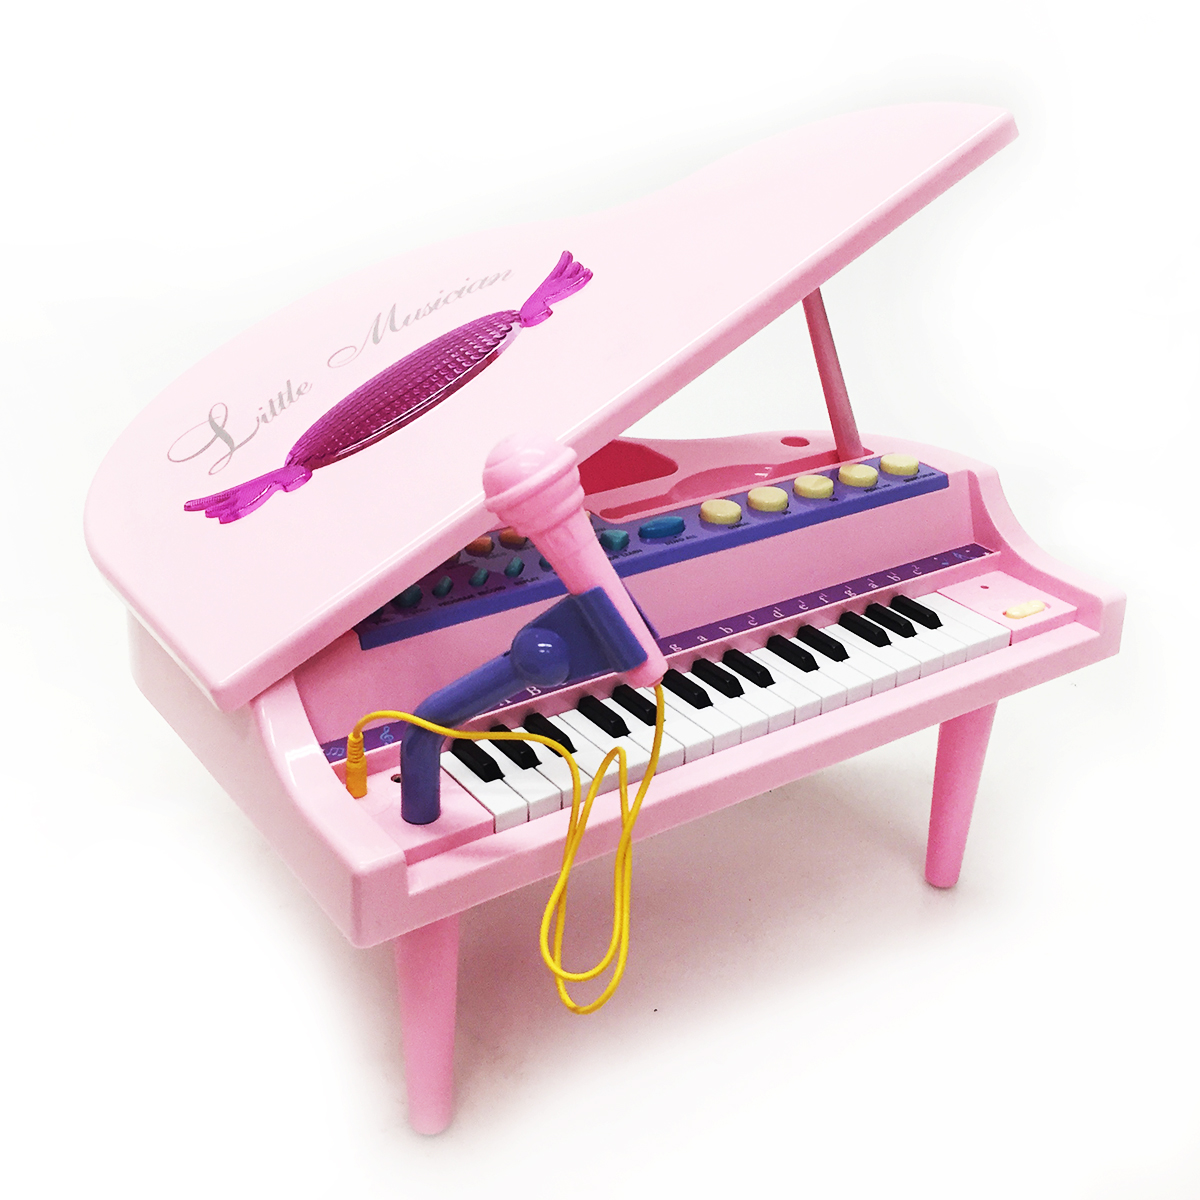 pink mini piano learn play piano microphone toy keyboard musical instruments ebay. Black Bedroom Furniture Sets. Home Design Ideas